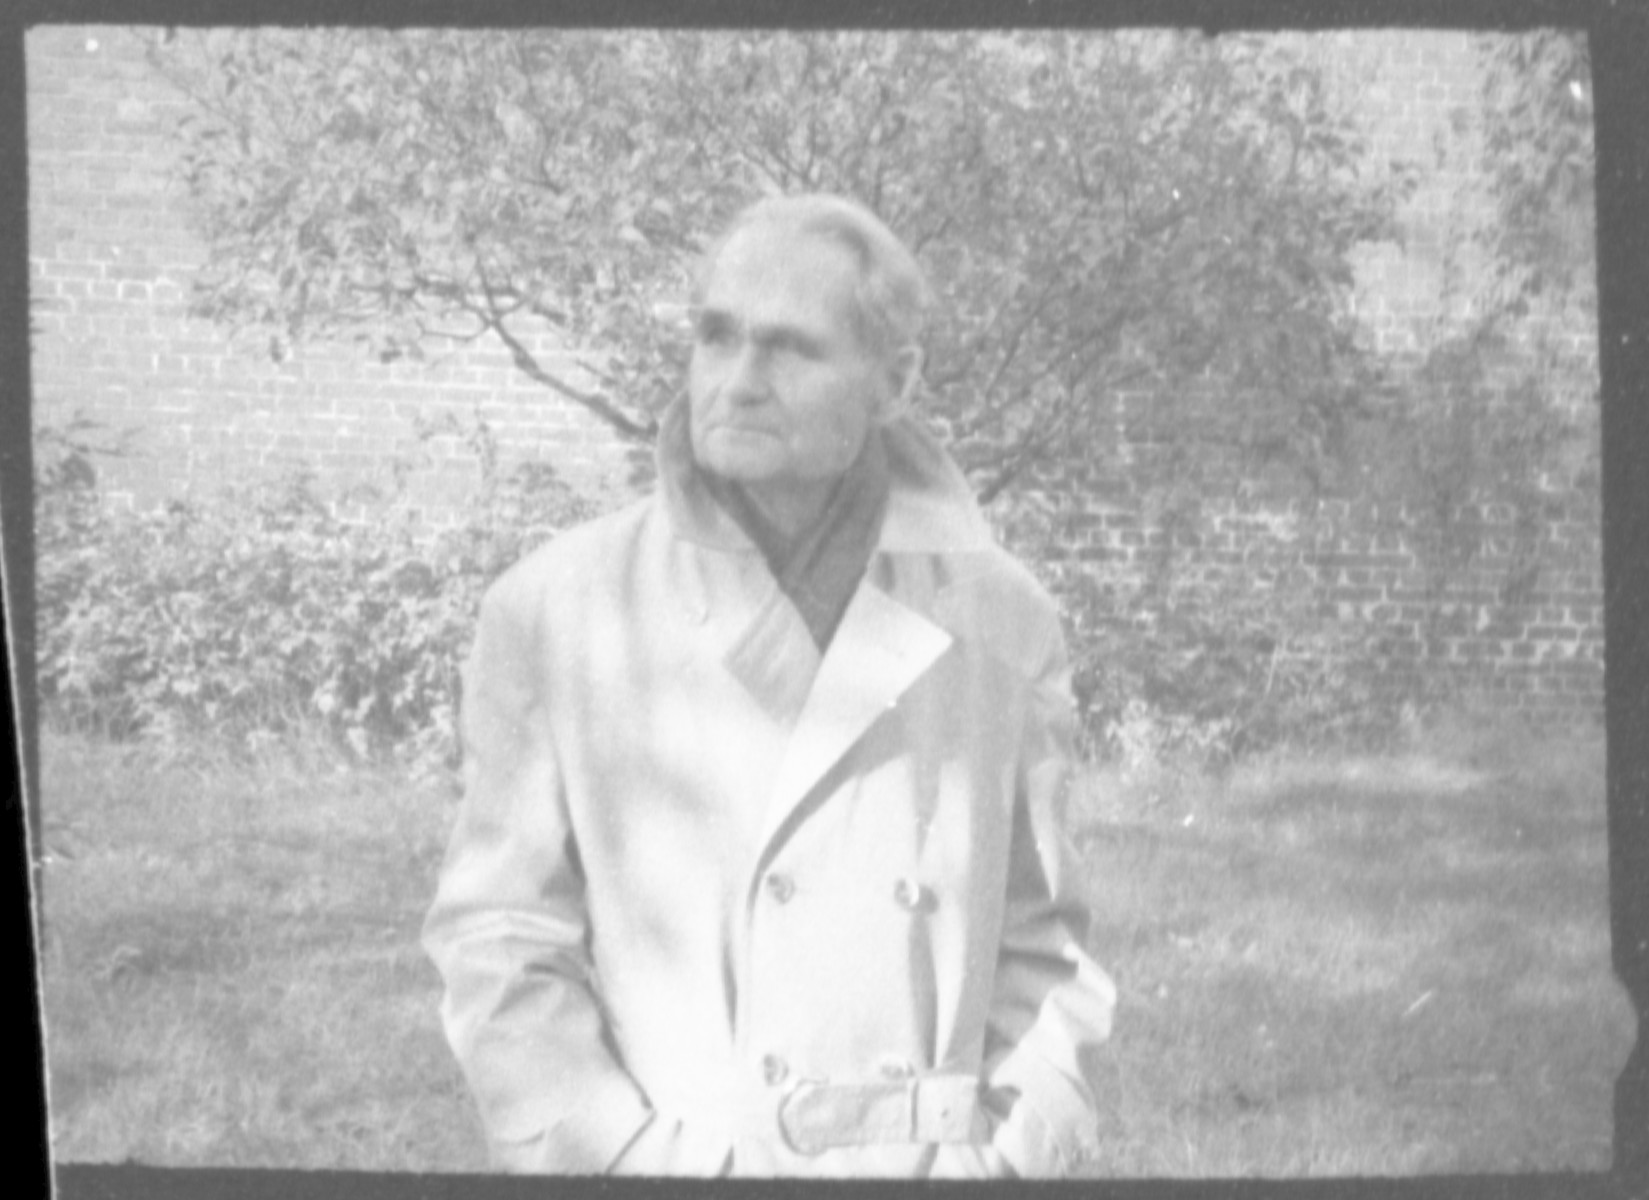 Close-up photographs of Rudolf Hess, in the garden of Spandau prison.